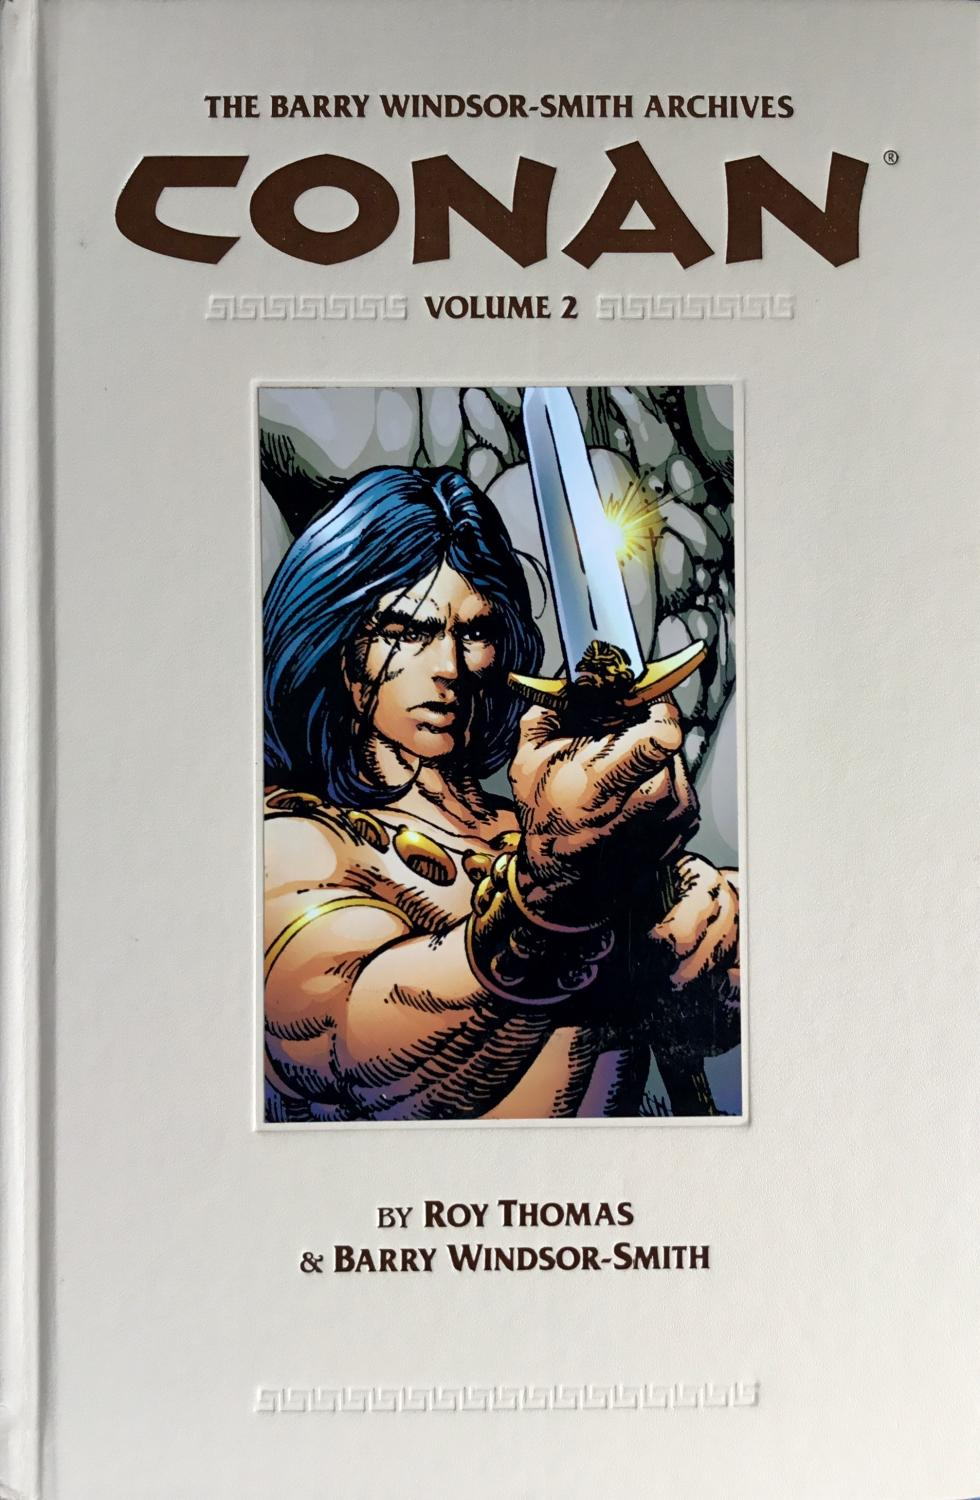 The BARRY WINDSOR-SMITH ARCHIVES - CONAN